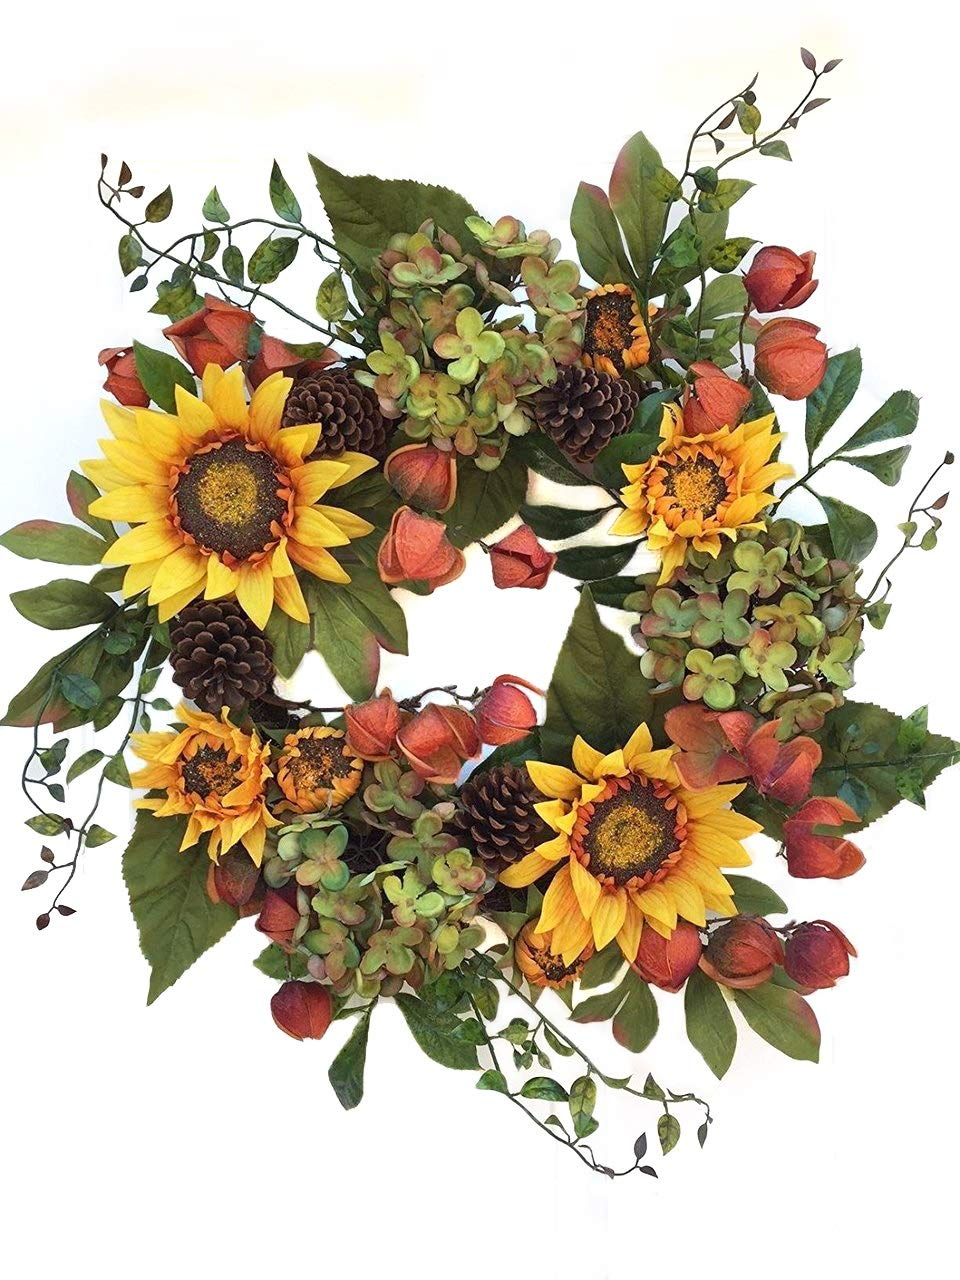 Autumn Elegance Fall Front Door Wreath or Year Round Indoor Home Decor Use Summer Though Fall Has Yellow Sunflowers Hydrangea Pine Cones Chineese Lanterns Outdoor Wreath Wreaths for Door